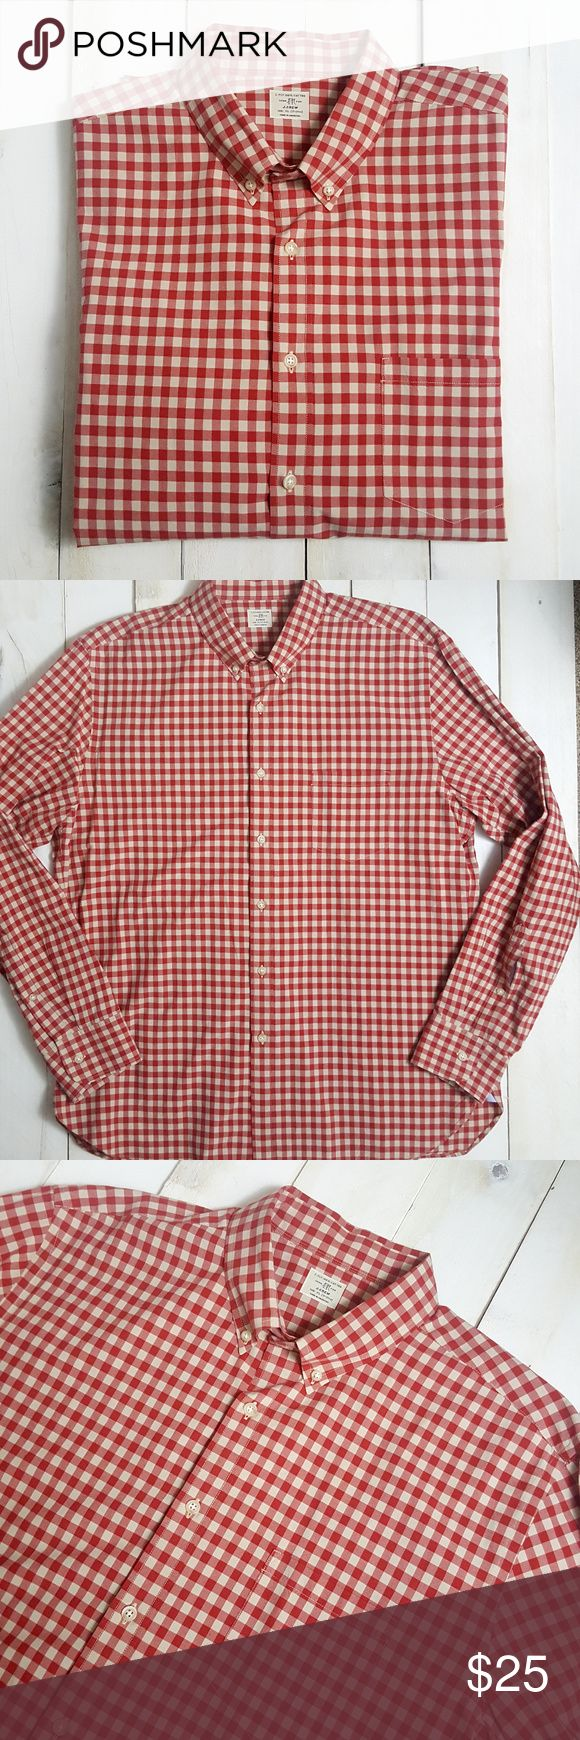 "Mens J Crew Red Checkered Dress Shirt XL 17-17 1/2 Condition: Mint, pre-owned condition  2-PLY 100% Cotton  Size: XL - 17-17 1/2  Chest: 25""  Sleeve: 27""  Length: 30""  ~  All items are inspected for flaws and are stated as such in the listing. Pre-owned items are washed and are guaranteed pet/smoke-free.  Customer satisfaction is very important, so if you ever have an issue with your order, please feel free to message me and I will be happy to assist you.  If your item does not fit or you…"